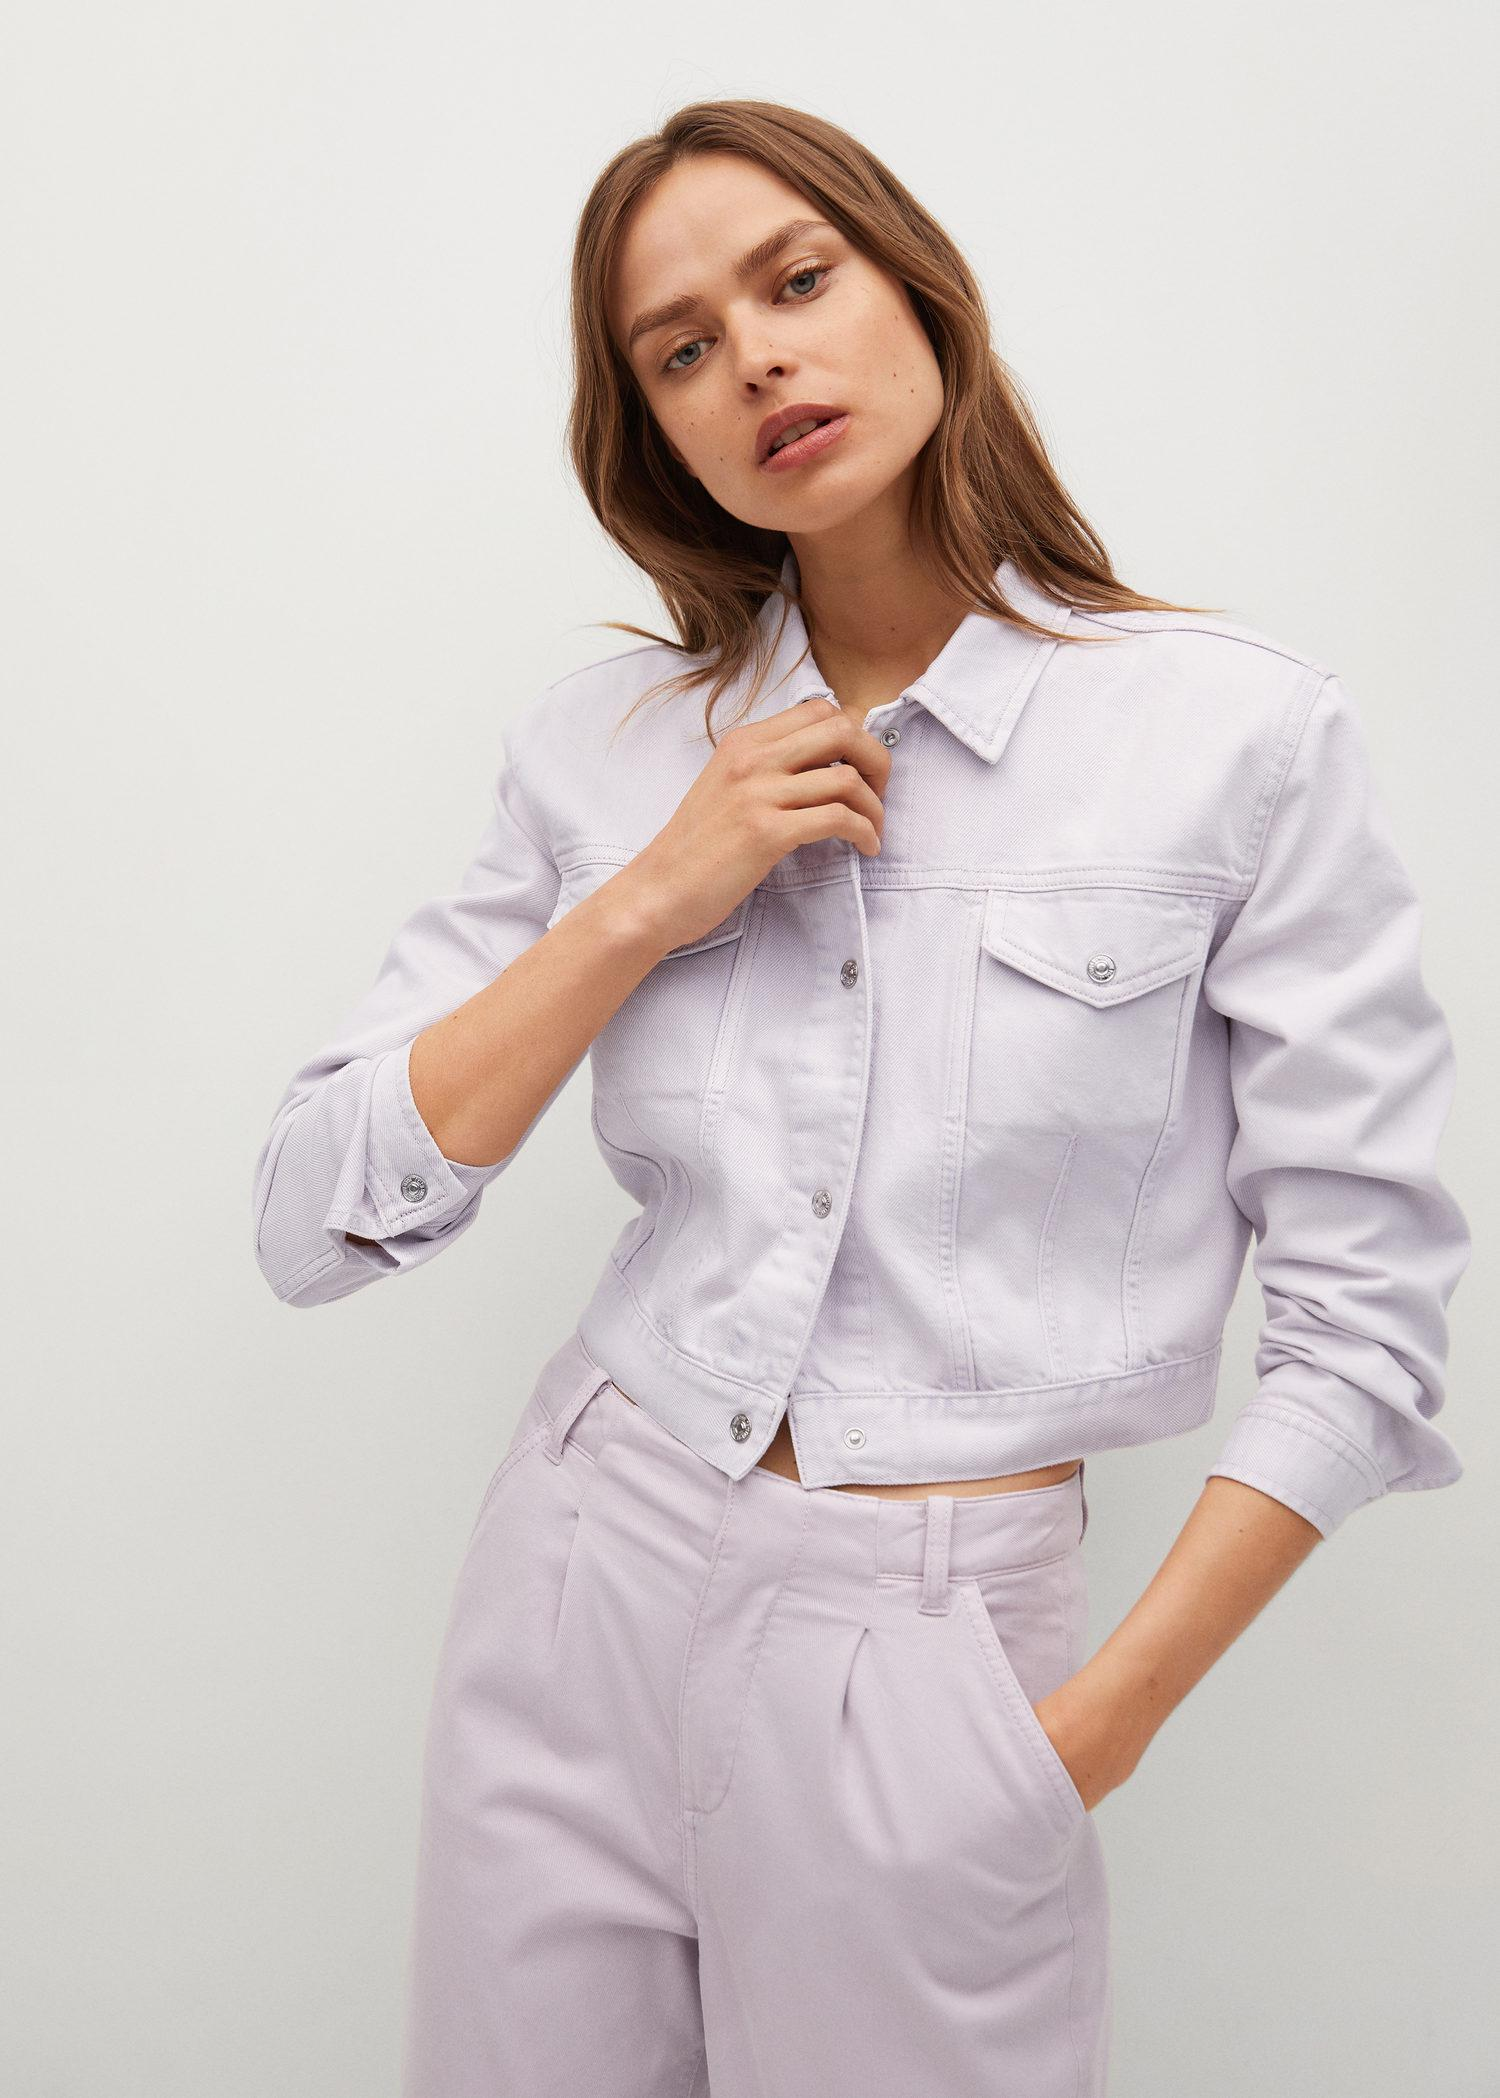 Cropped jacket with shoulder pads 5